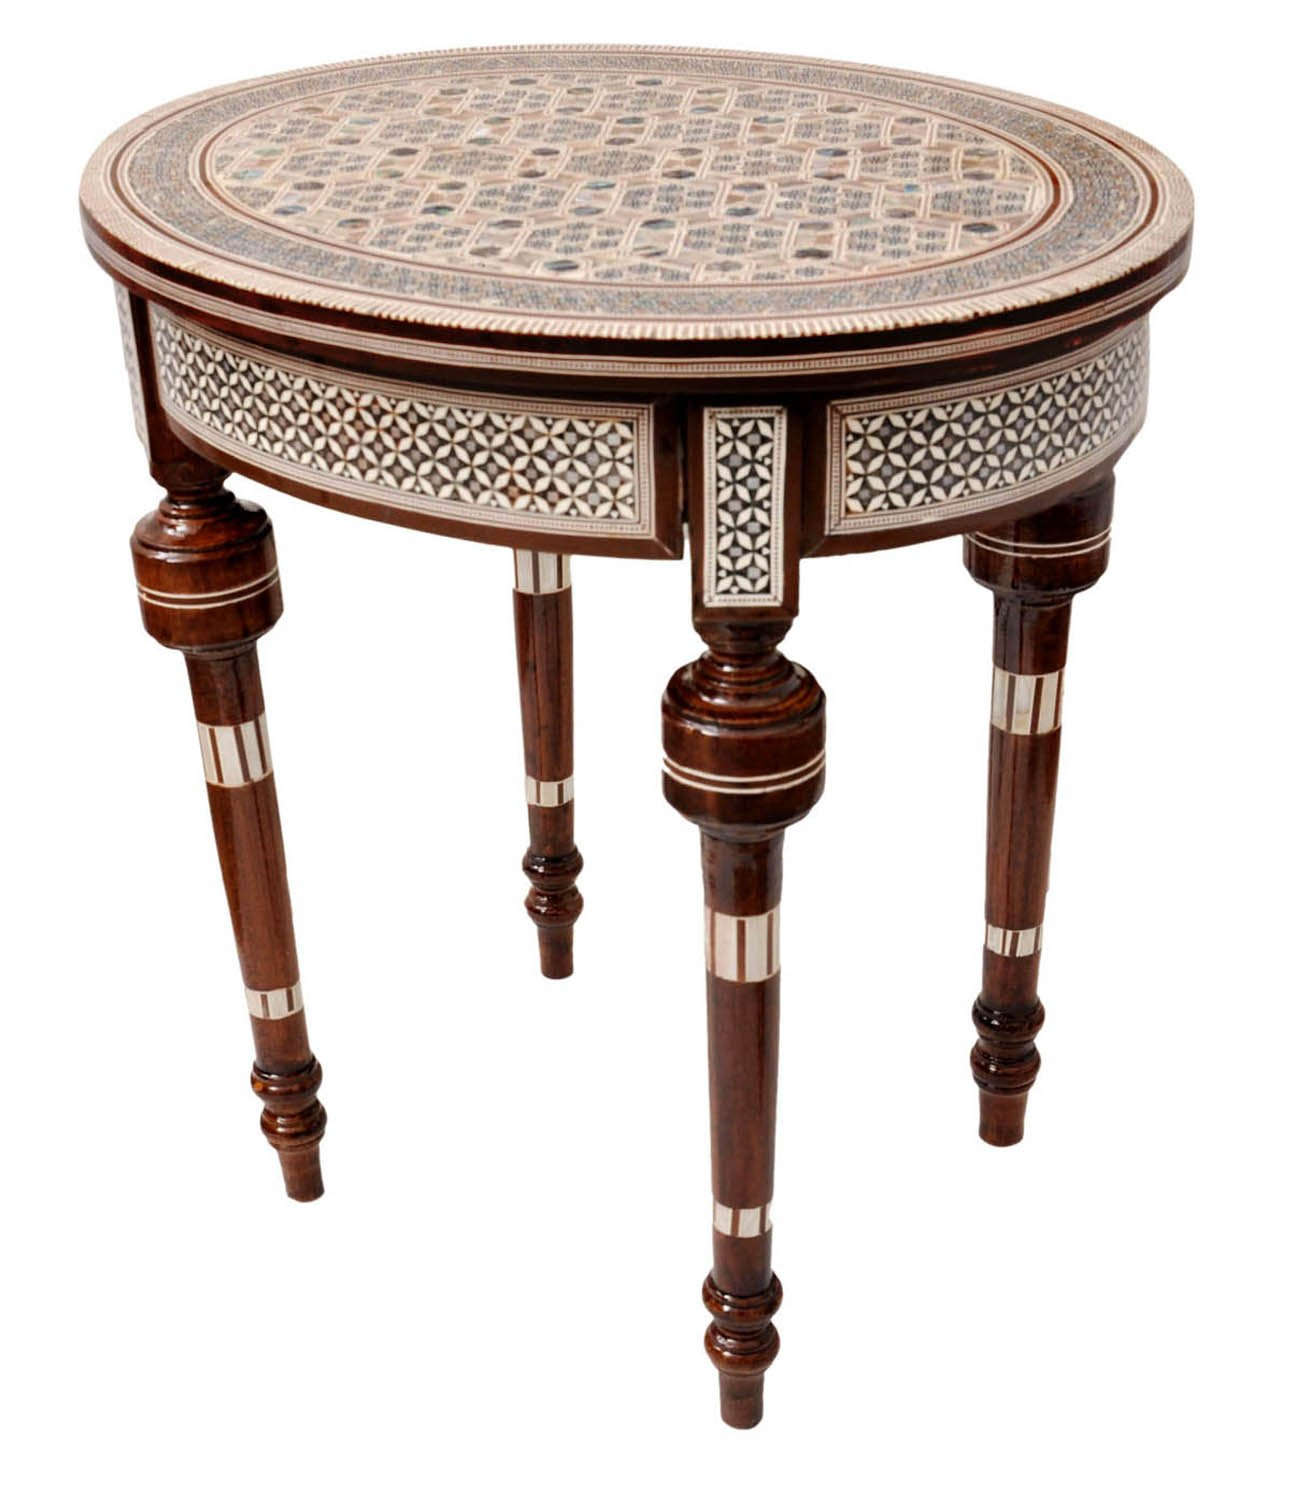 Genial Handcrafted Egyptian Mother Of Pearl Inlay Wood Small Side Table For The  Living Room Morrocan Style